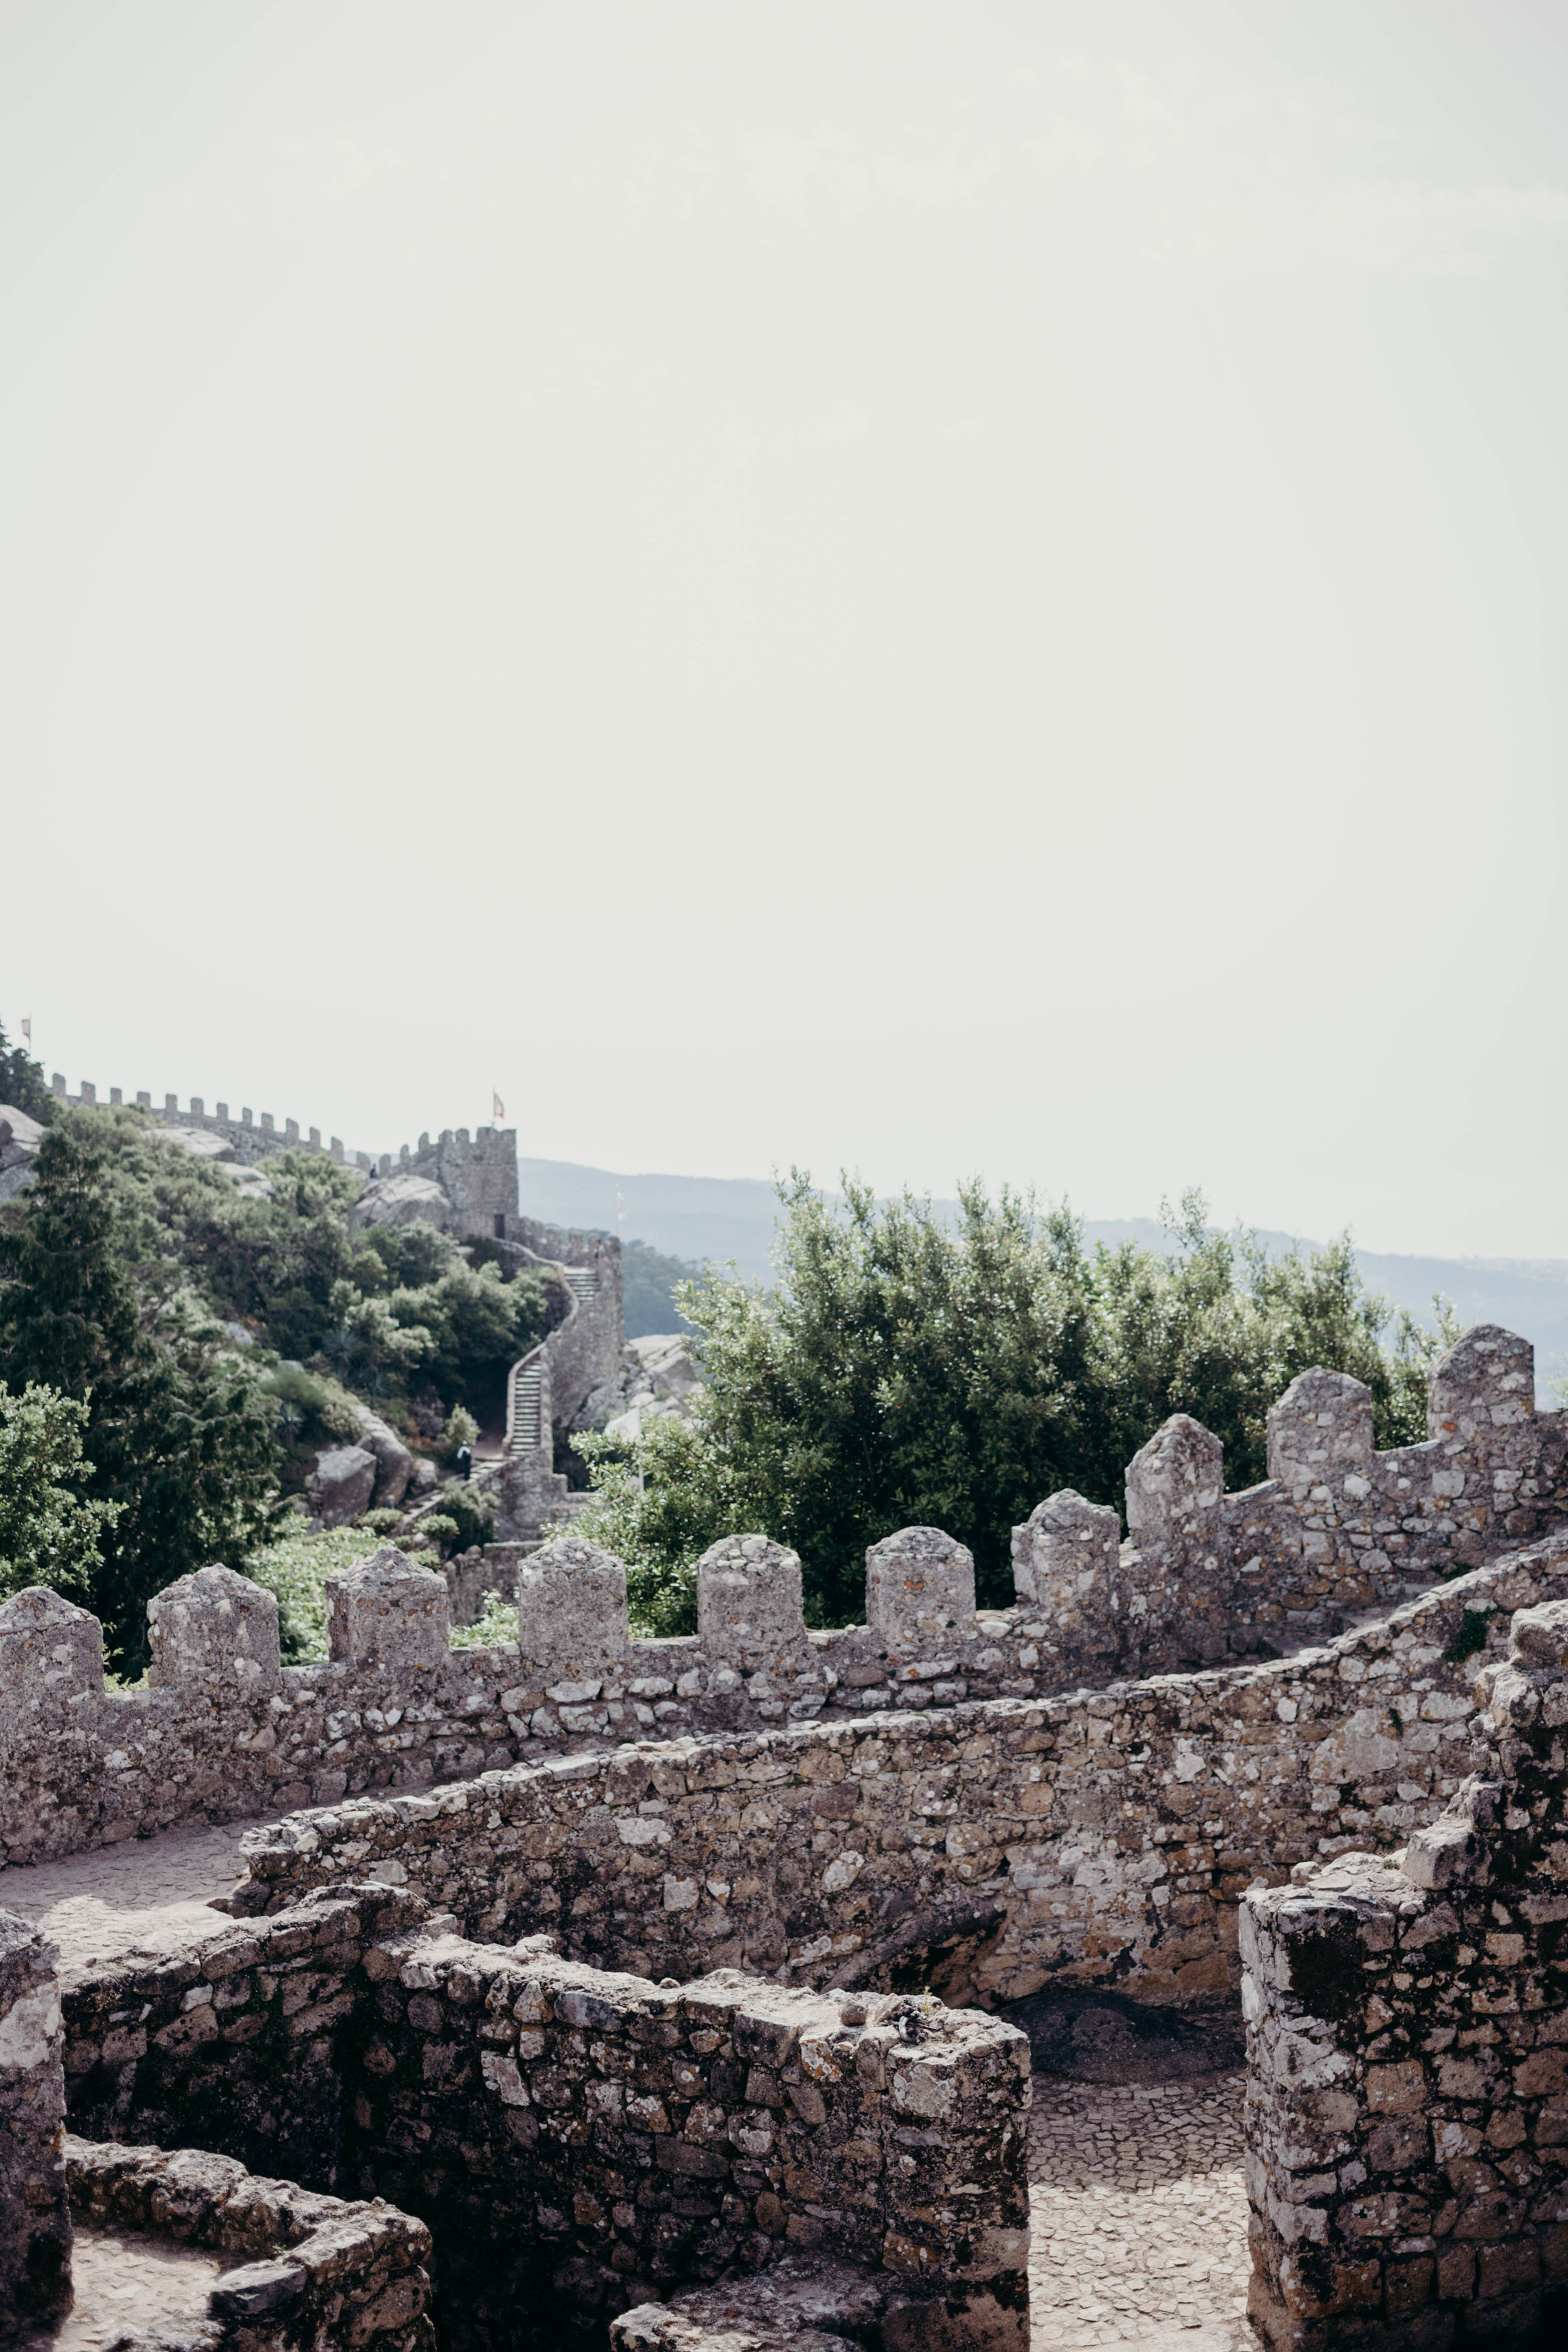 Our Portugal Travel Diary: Lisbon, Porto, and More | On the Street Where We Live (aretherelilactrees.com)  Sintra, Castle of the Moors